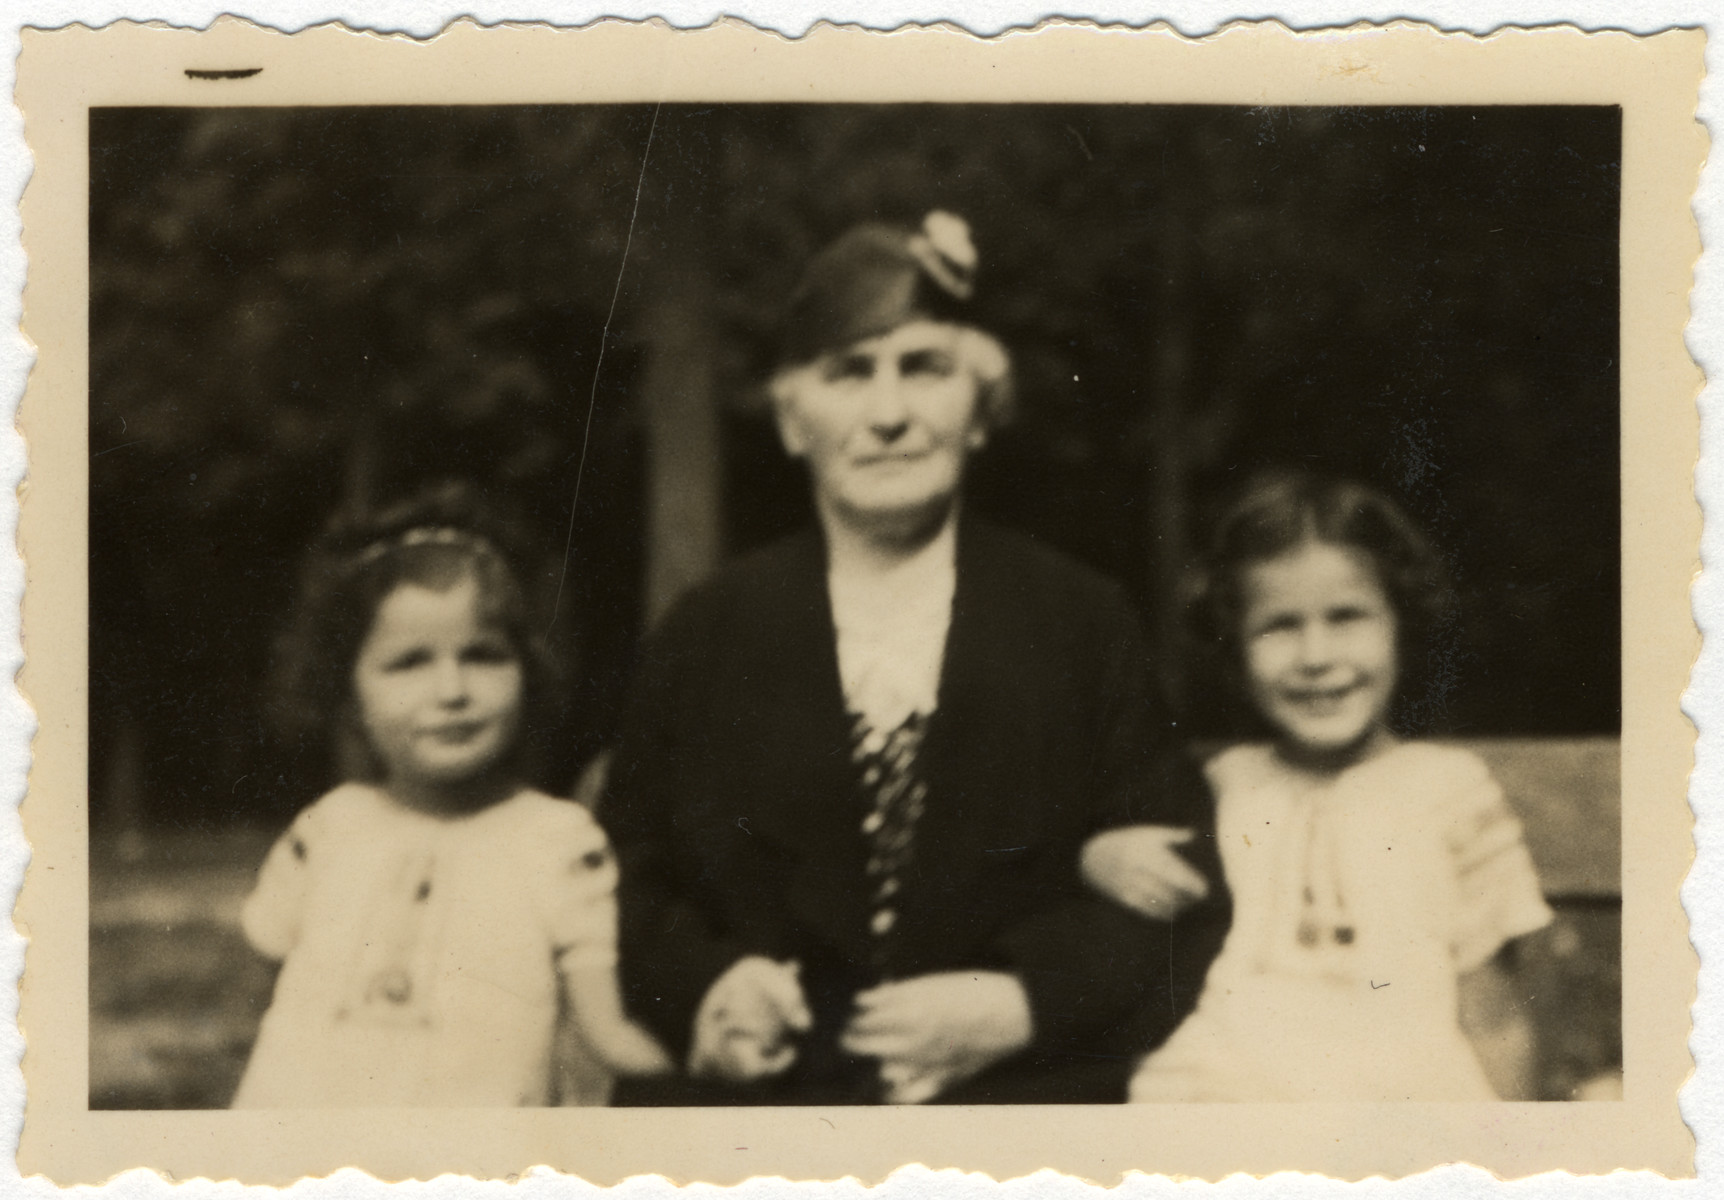 Jacqueline (left) and Manuela Mendels (right) go for a walk with their paternal grandmother, Thekla Marx Mendels.  Their grandmother later perished in Sobibor at the age of 70.